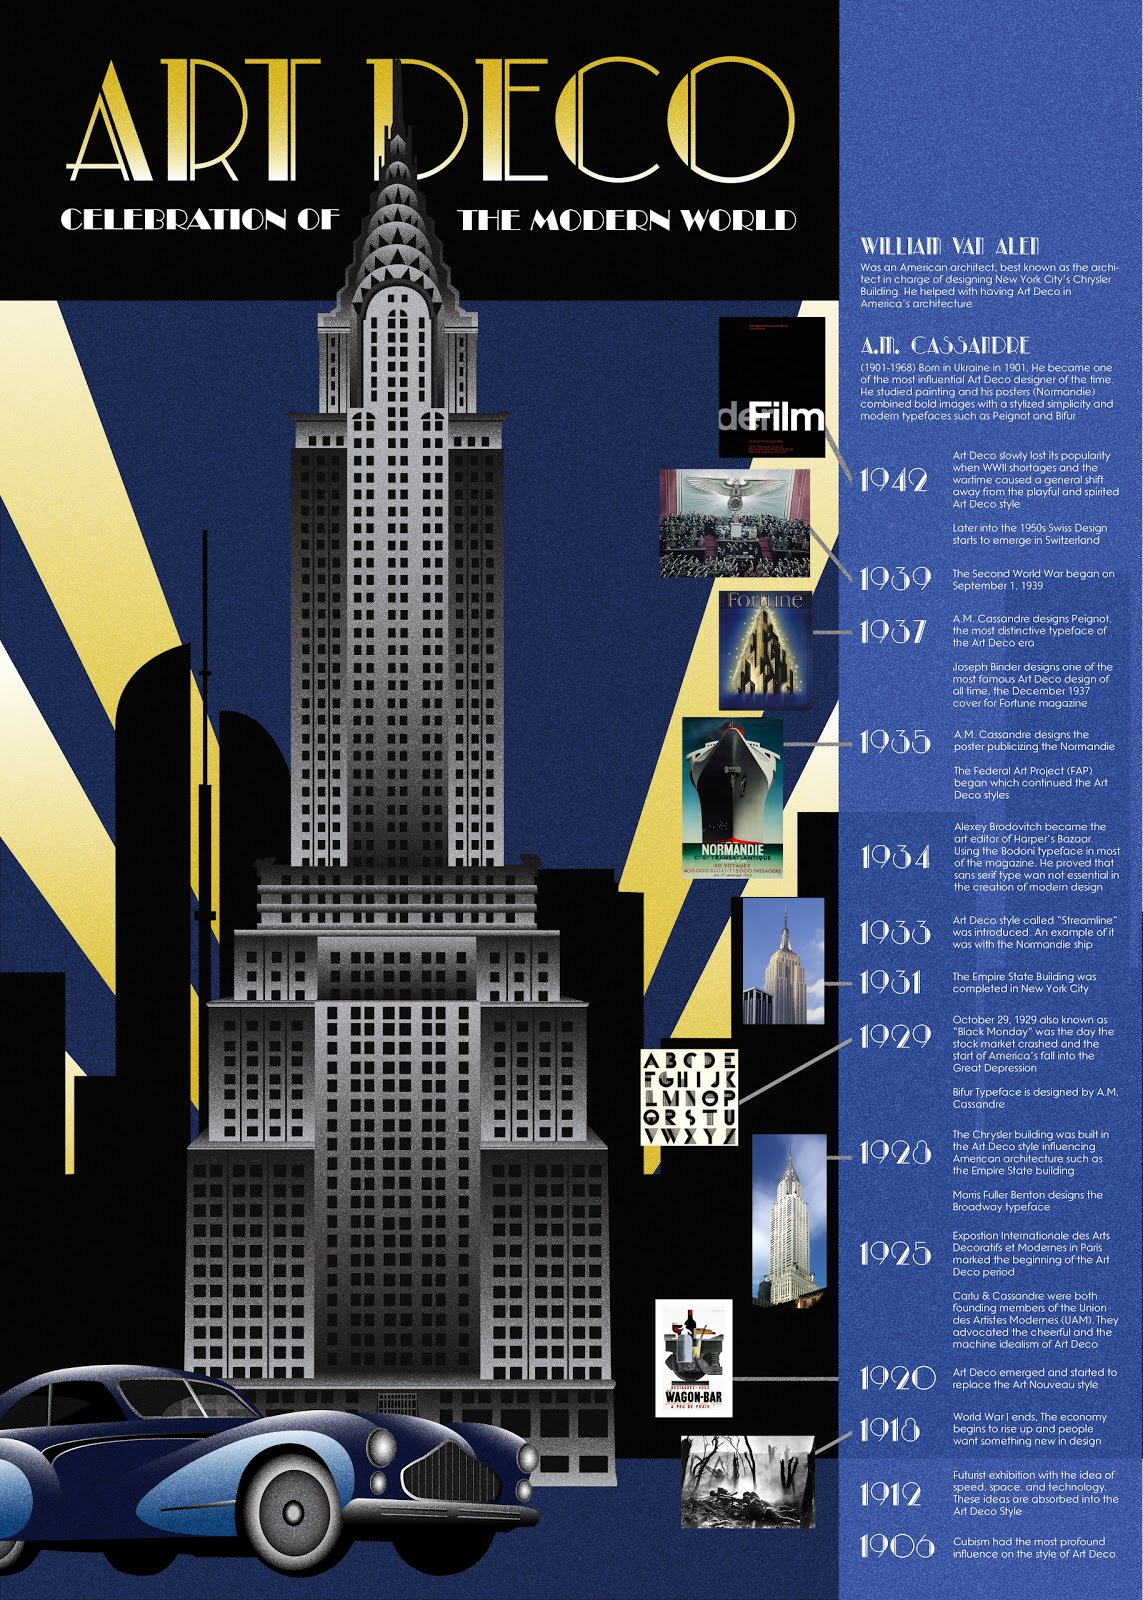 Design History F12 Marie Art Deco Movement TImeline